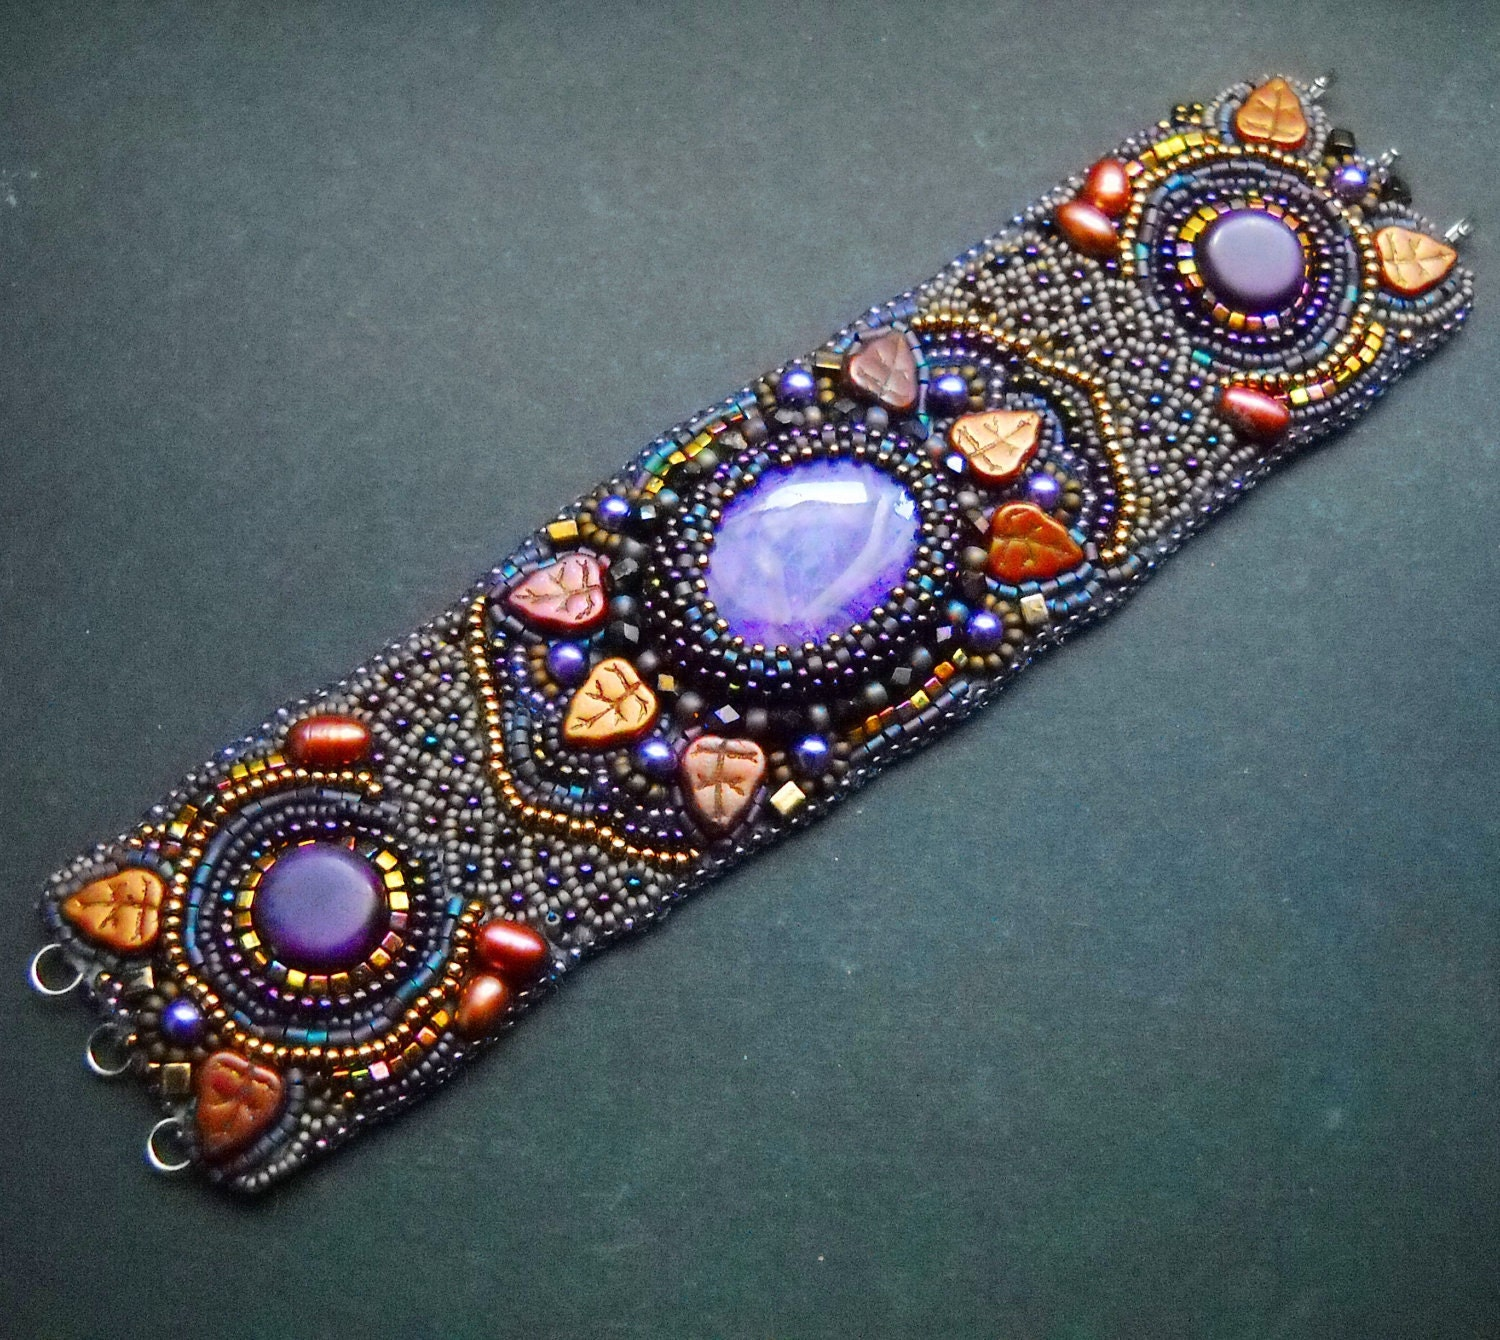 Spicy india bead embroidered bracelet cuff with purple